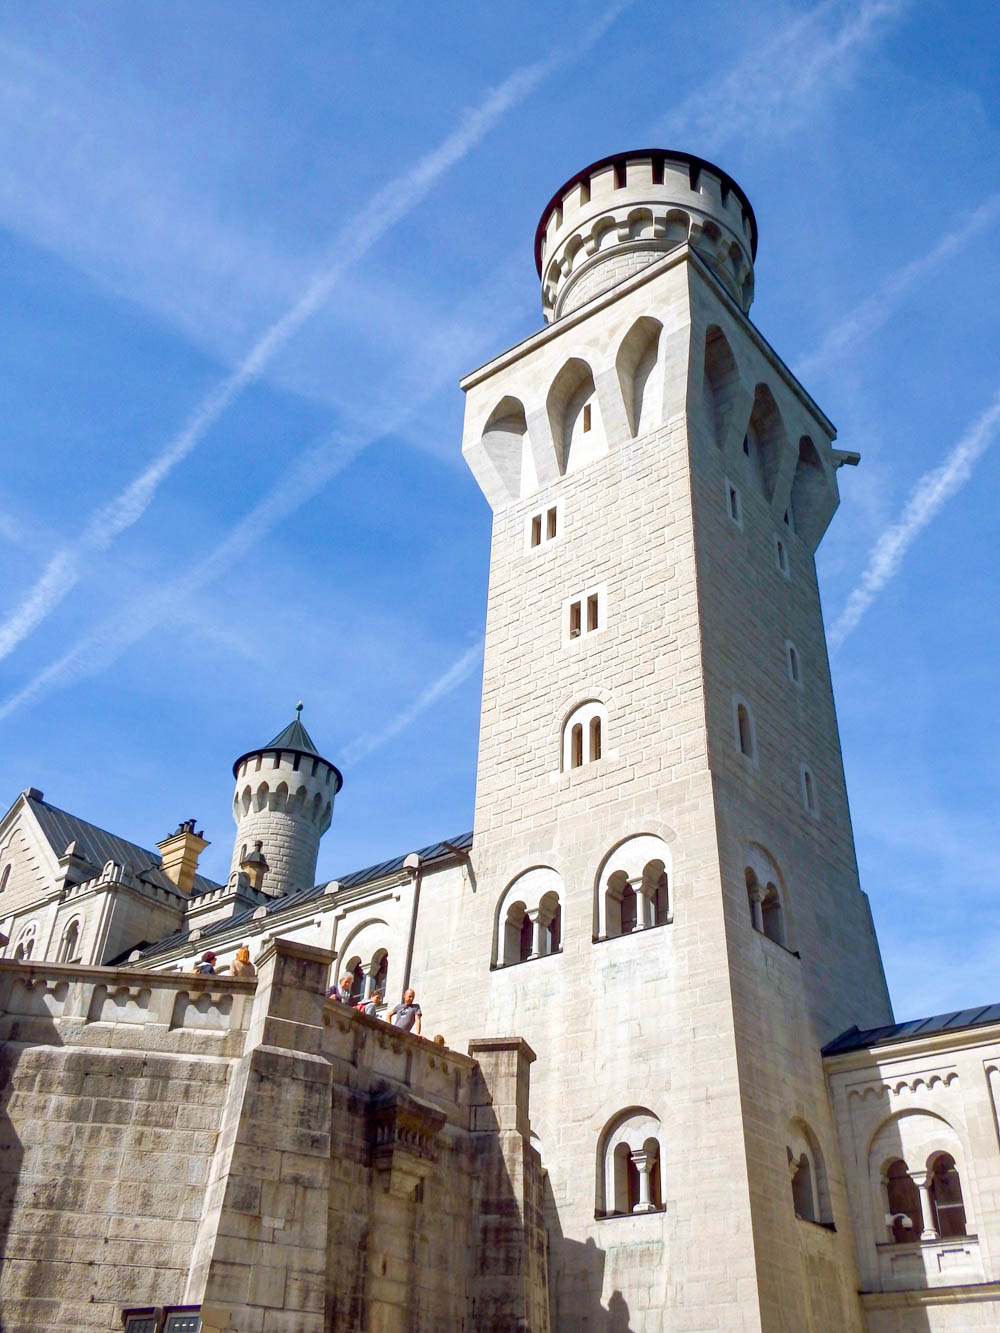 turret | 10 Crucial Tips to Visit Neuschwanstein Castle Skillfully and Worry-Free | Tips for visiting Neuschwanstein Castle in Bavaria, Germany | Neuschwanstein Castle tour tickets